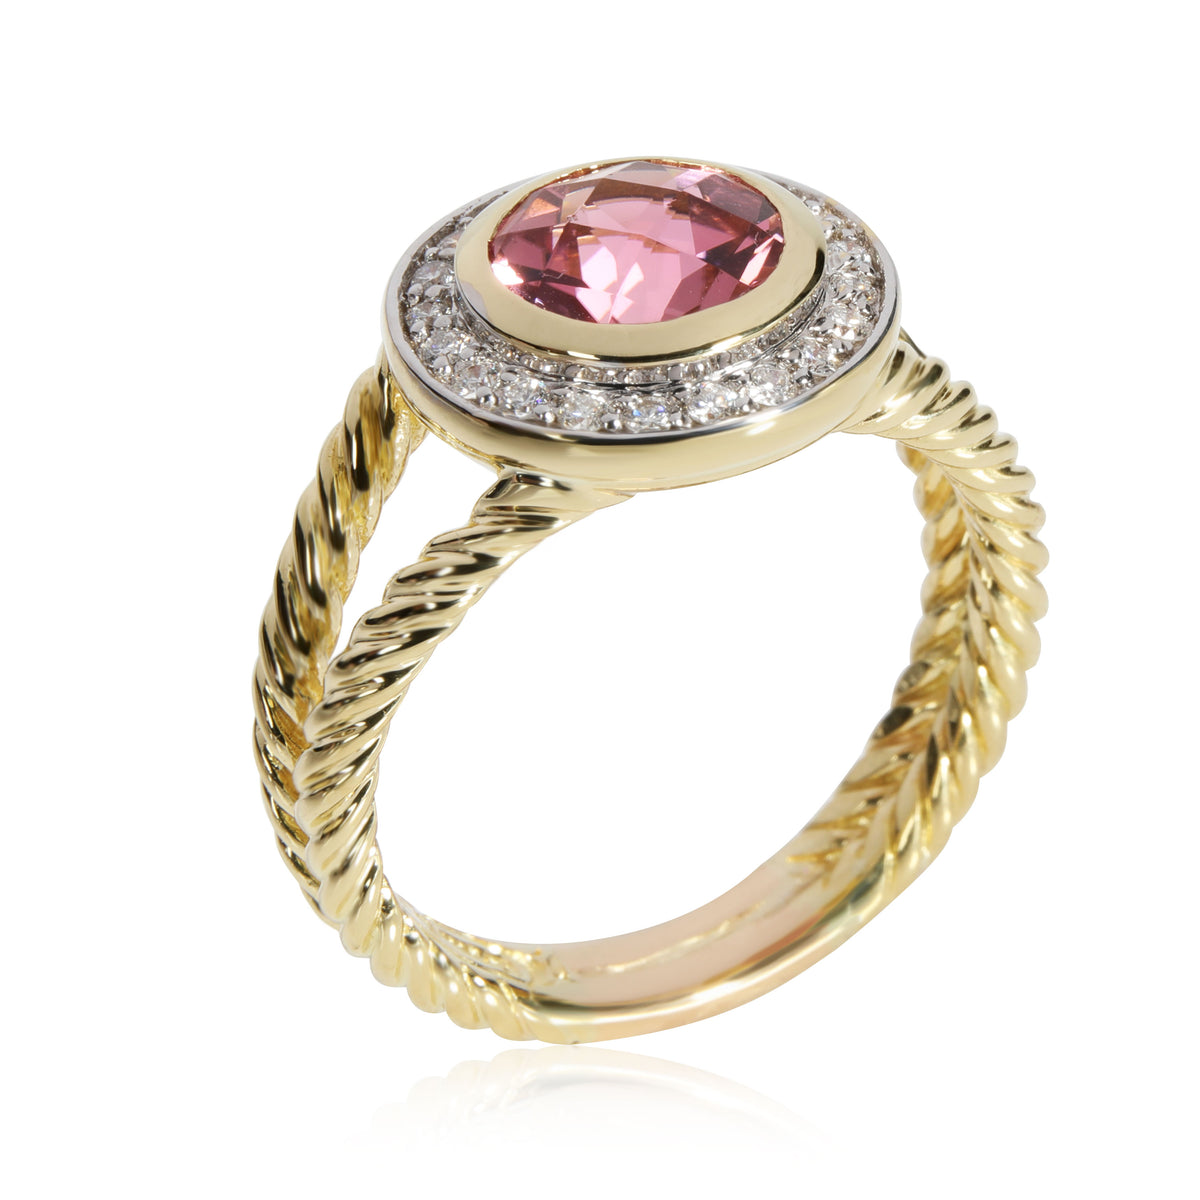 David Yurman Cable Ring with Diamonds & Tourmaline in 18K Yellow Gold 0.21 CTW